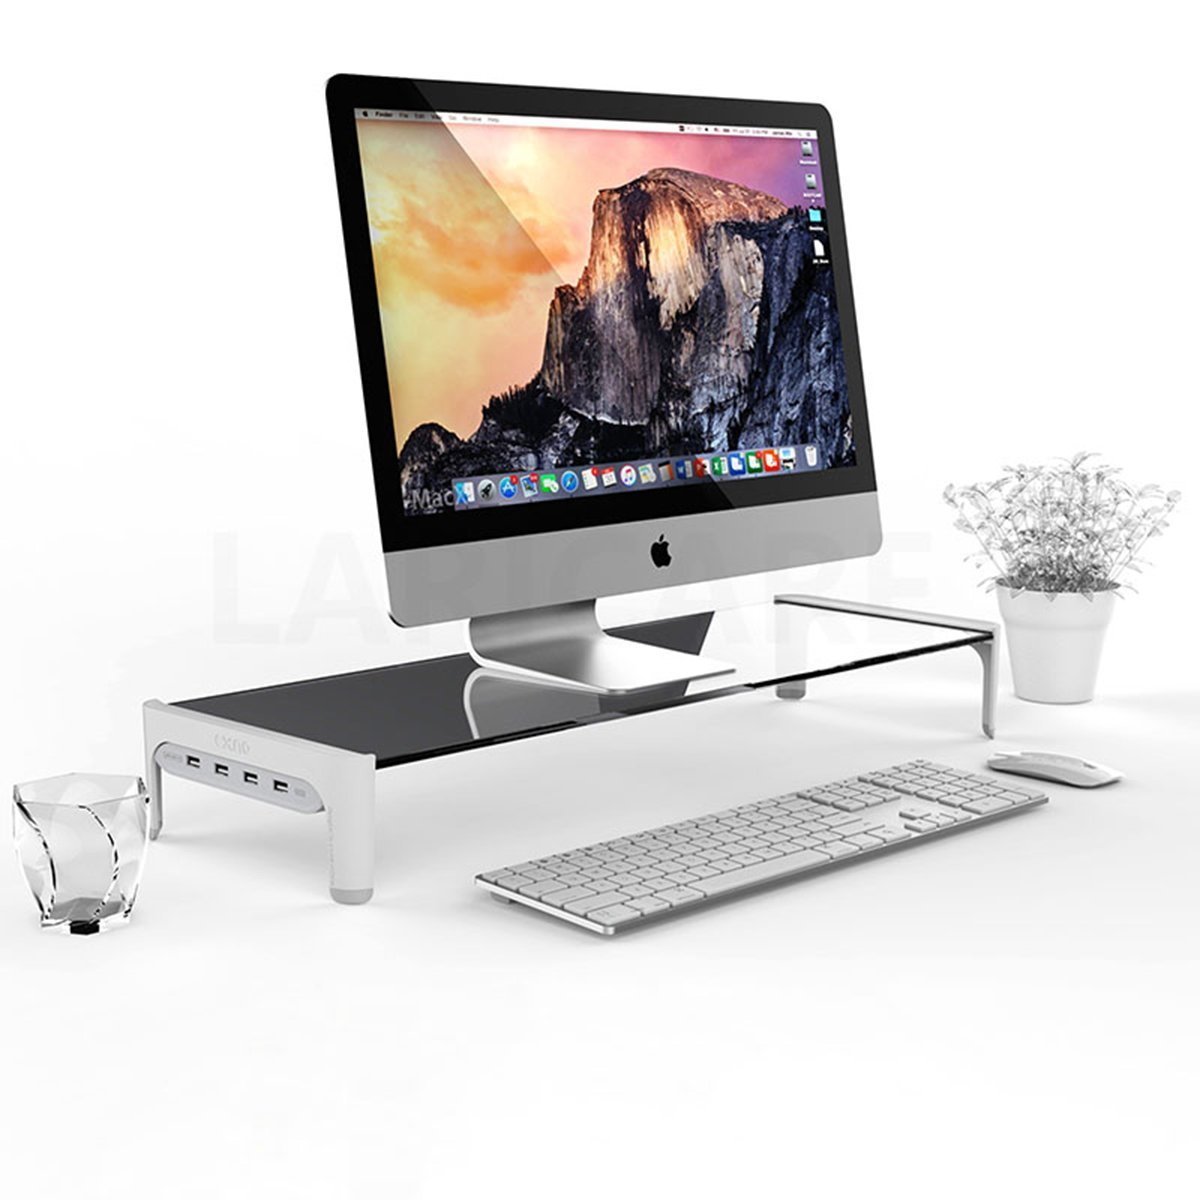 DOLDOA Tempered Glass Computer Monitor Stand with 4 USB Ports,Custom Size Monitor Riser/Computer Stand/PC Desk Stand, for TV Screen Shelf,Sturdy Platform,Keyboard Storage and Mult (White) by DOLDOA